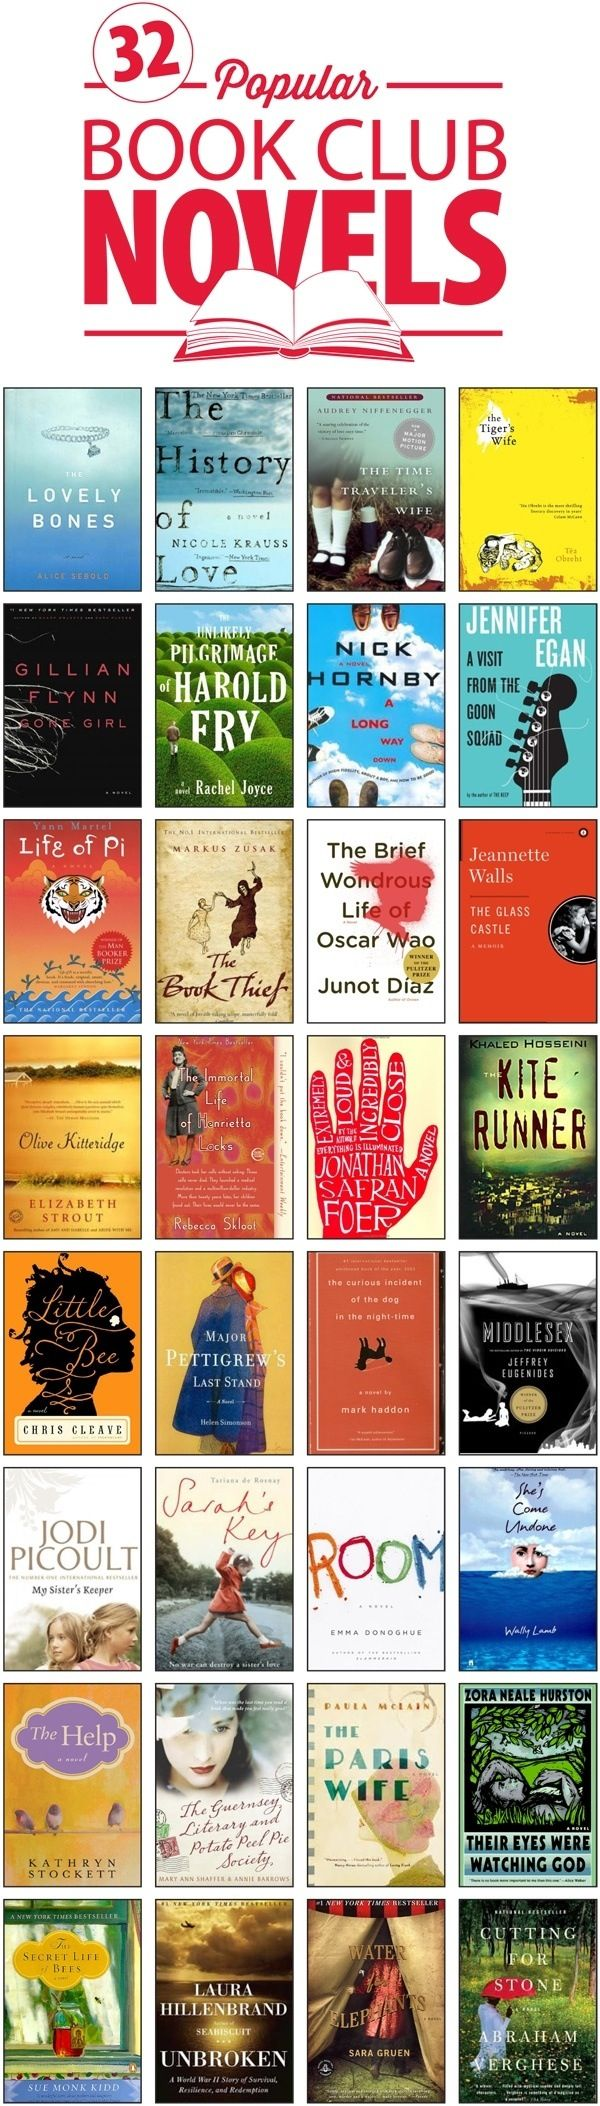 popular books. I have read several of these, but glad to have some new titles.